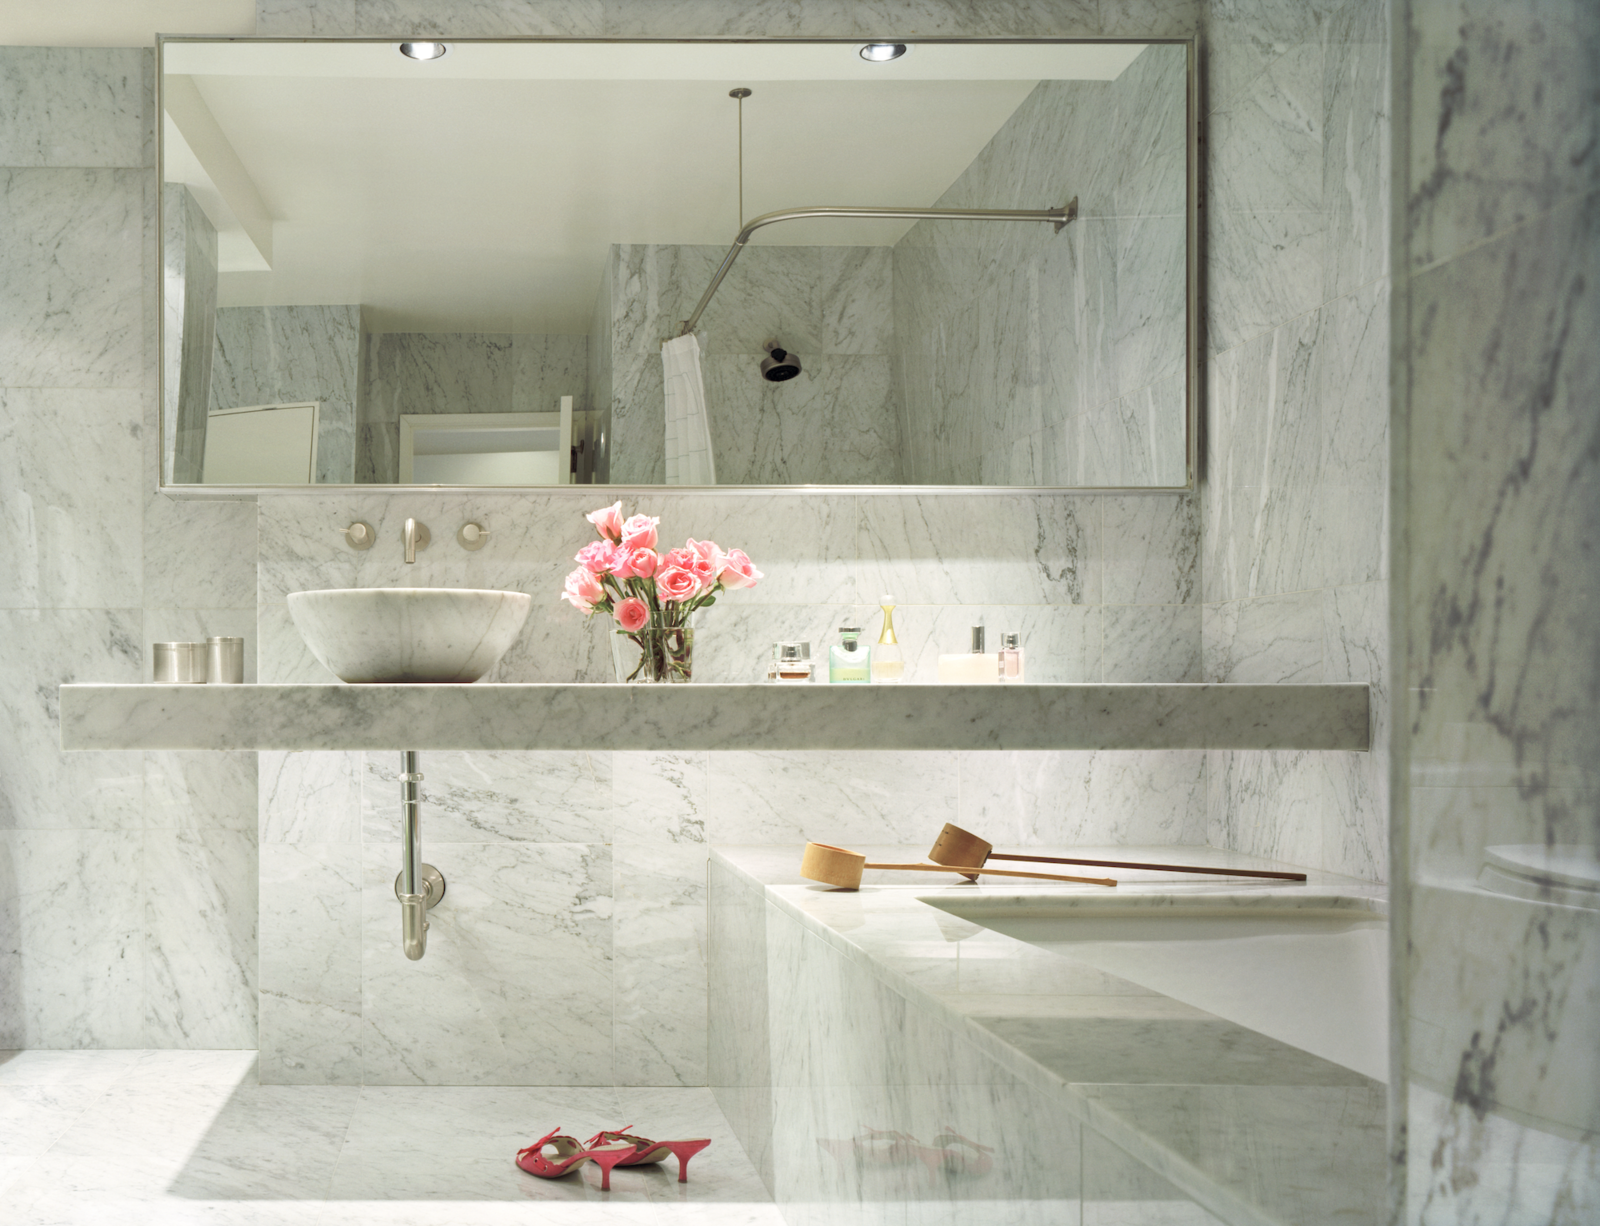 Bath Room, Vessel Sink, Recessed Lighting, Marble Floor, Undermount Tub, Marble Wall, and Marble Counter Hariri and her husband have separate bathrooms, each with their preferred. He preferred a shower, but Hariri wanted a tub.  Photo 8 of 9 in Acclaimed Architect Gisue Hariri Invites Us Into Her Intimate Manhattan Loft